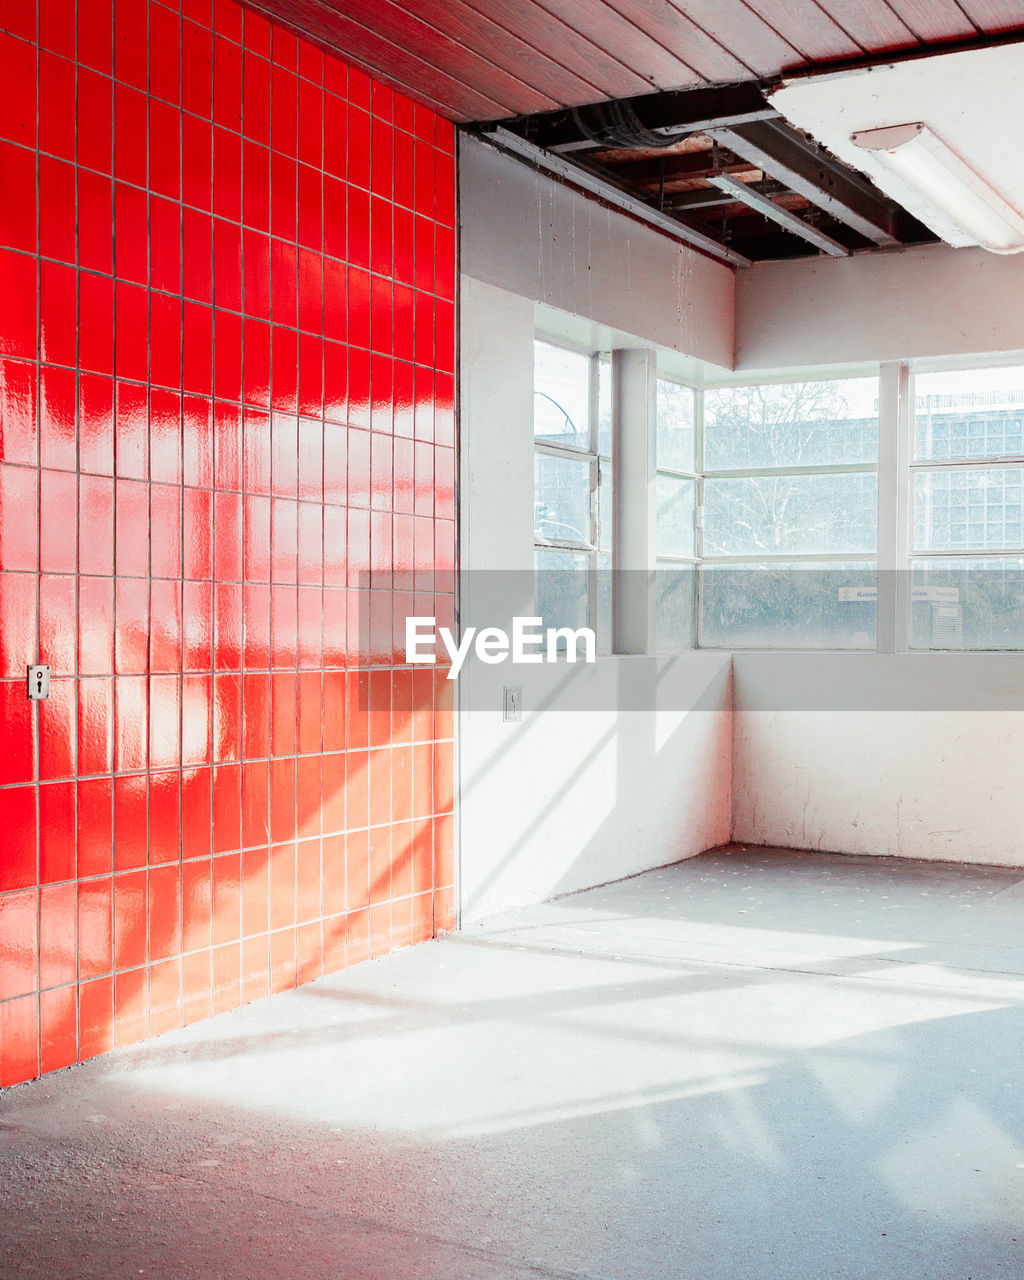 window, architecture, sunlight, indoors, day, built structure, building, no people, red, flooring, nature, wall - building feature, shadow, absence, glass - material, empty, modern, wall, domestic room, brightly lit, ceiling, tiled floor